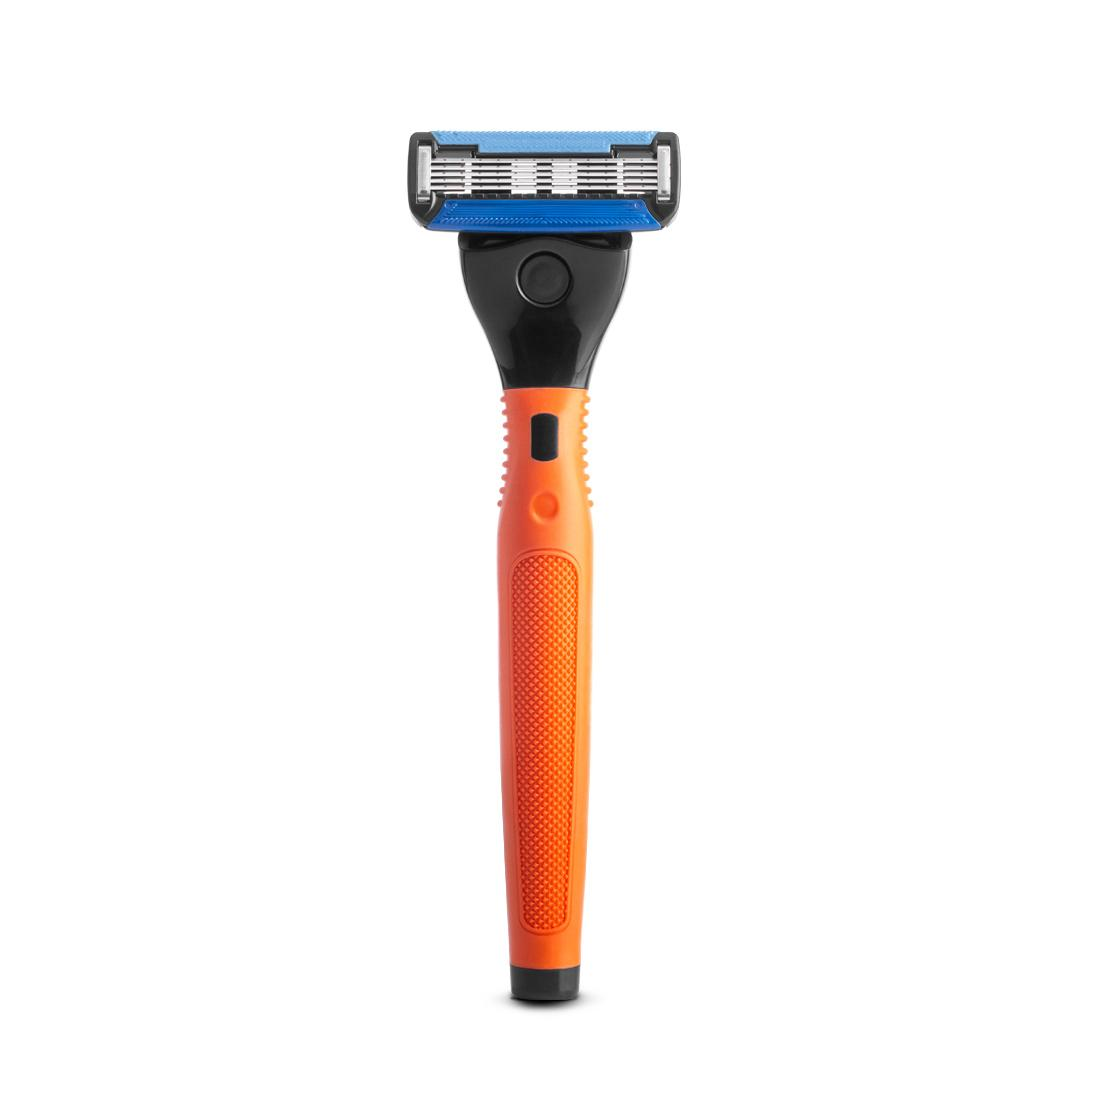 Ustraa GEAR 5 - Orange Double Coated 5 Blade Razor for Men for Close Shave with Precision Blade for Shaping